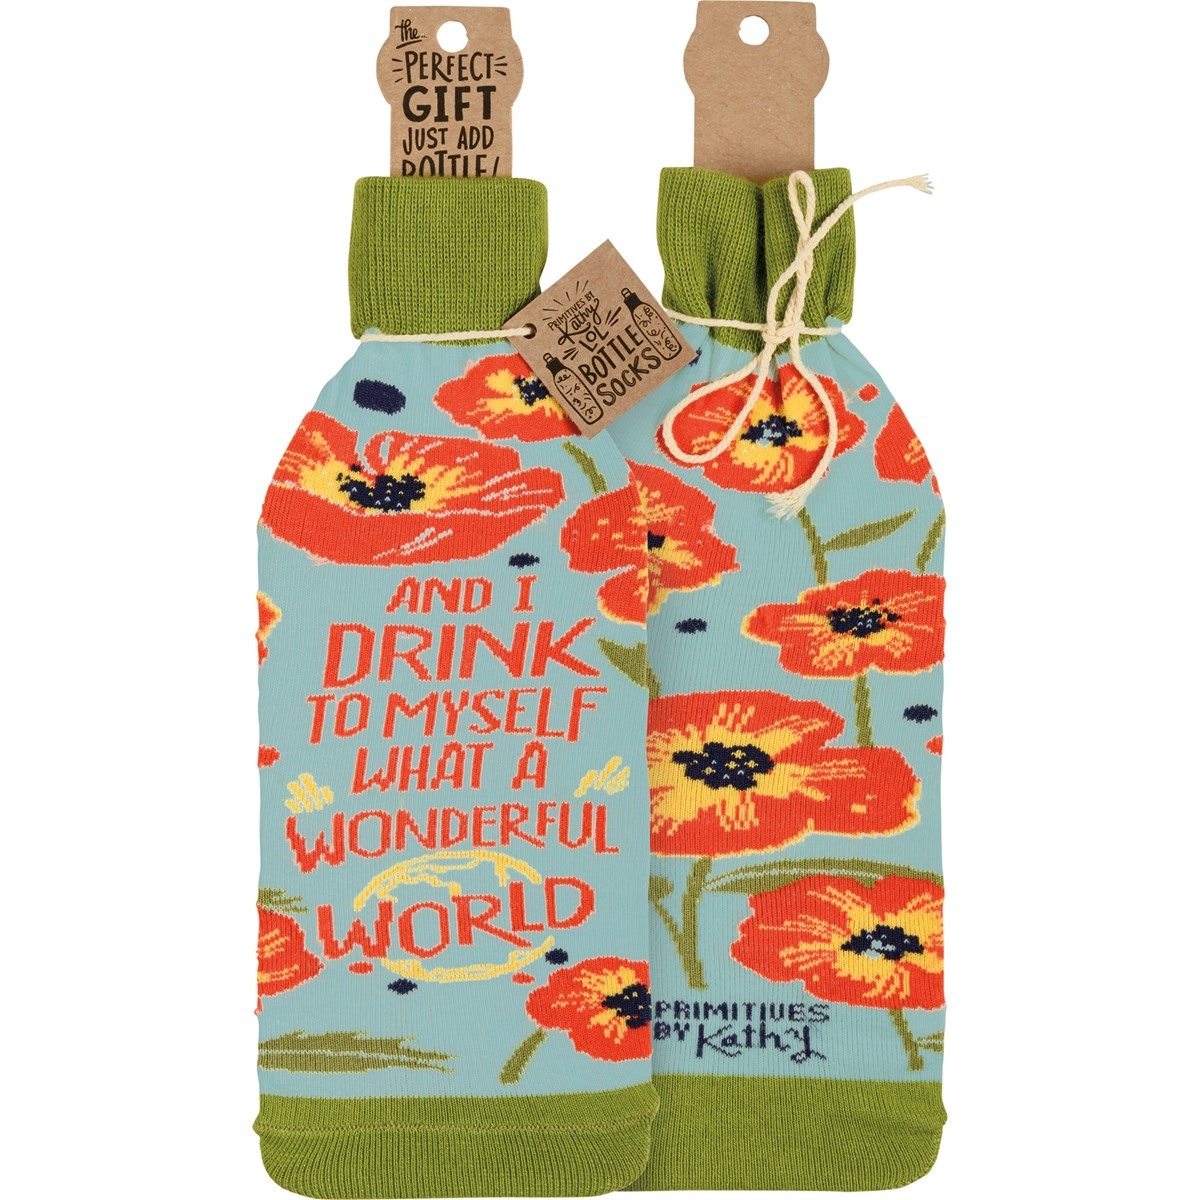 "Bottle Sock - And I Drink To Myself - 3.50"" x 11.25"", Fits 750mL to 1.5L bottles - Cotton, Nylon, Spandex"